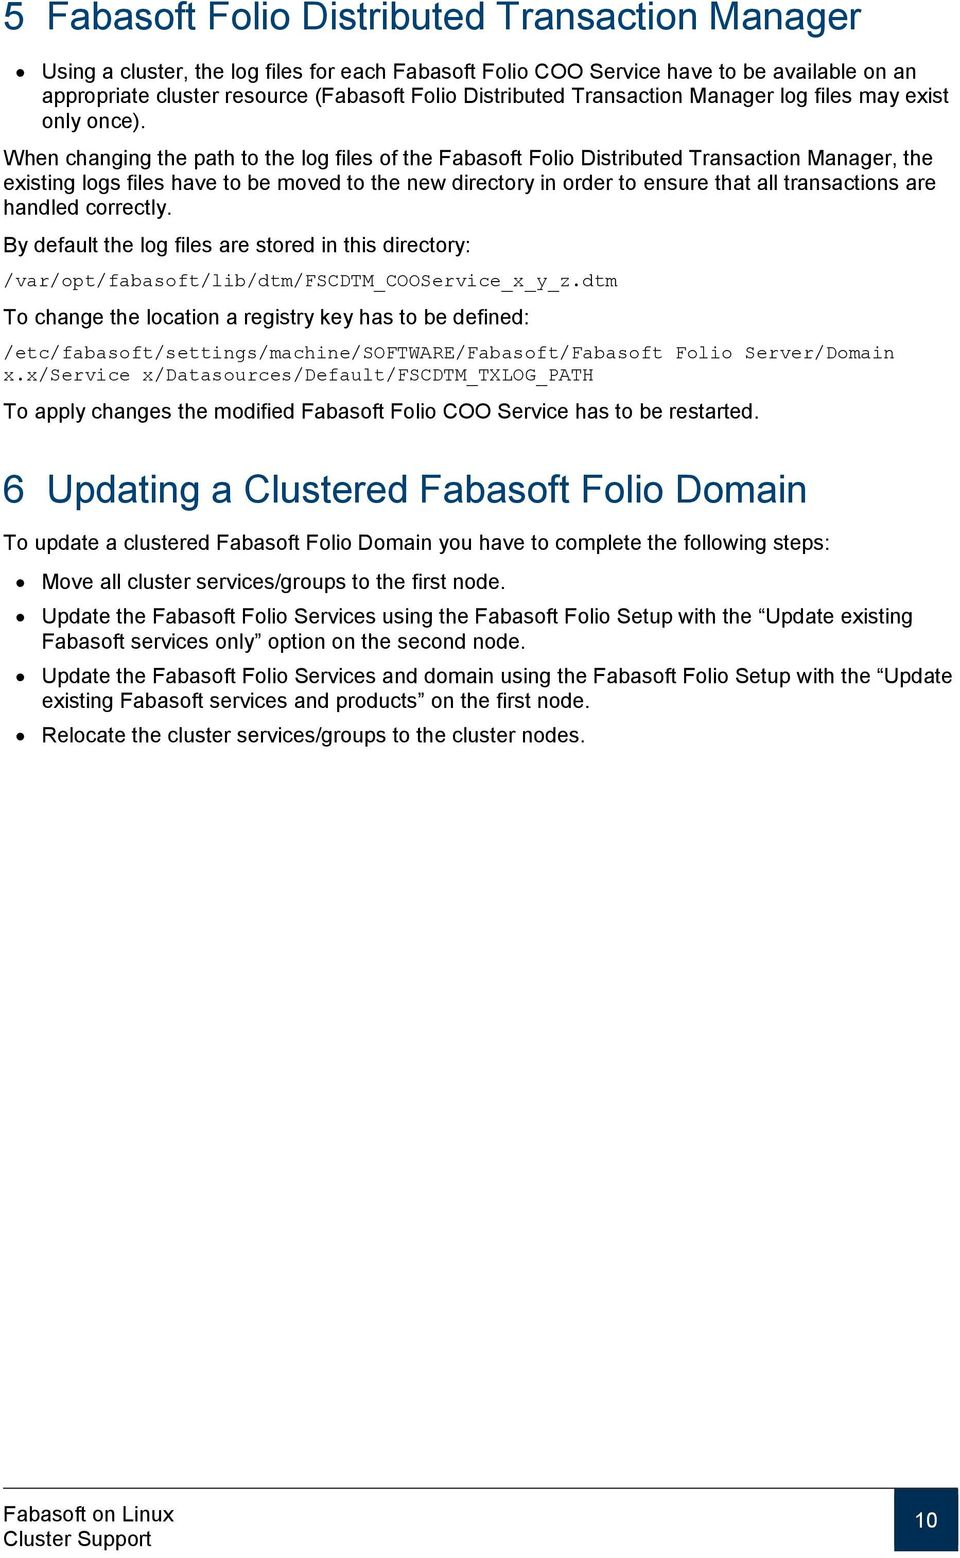 When changing the path to the log files of the Fabasoft Folio Distributed Transaction Manager, the existing logs files have to be moved to the new directory in order to ensure that all transactions